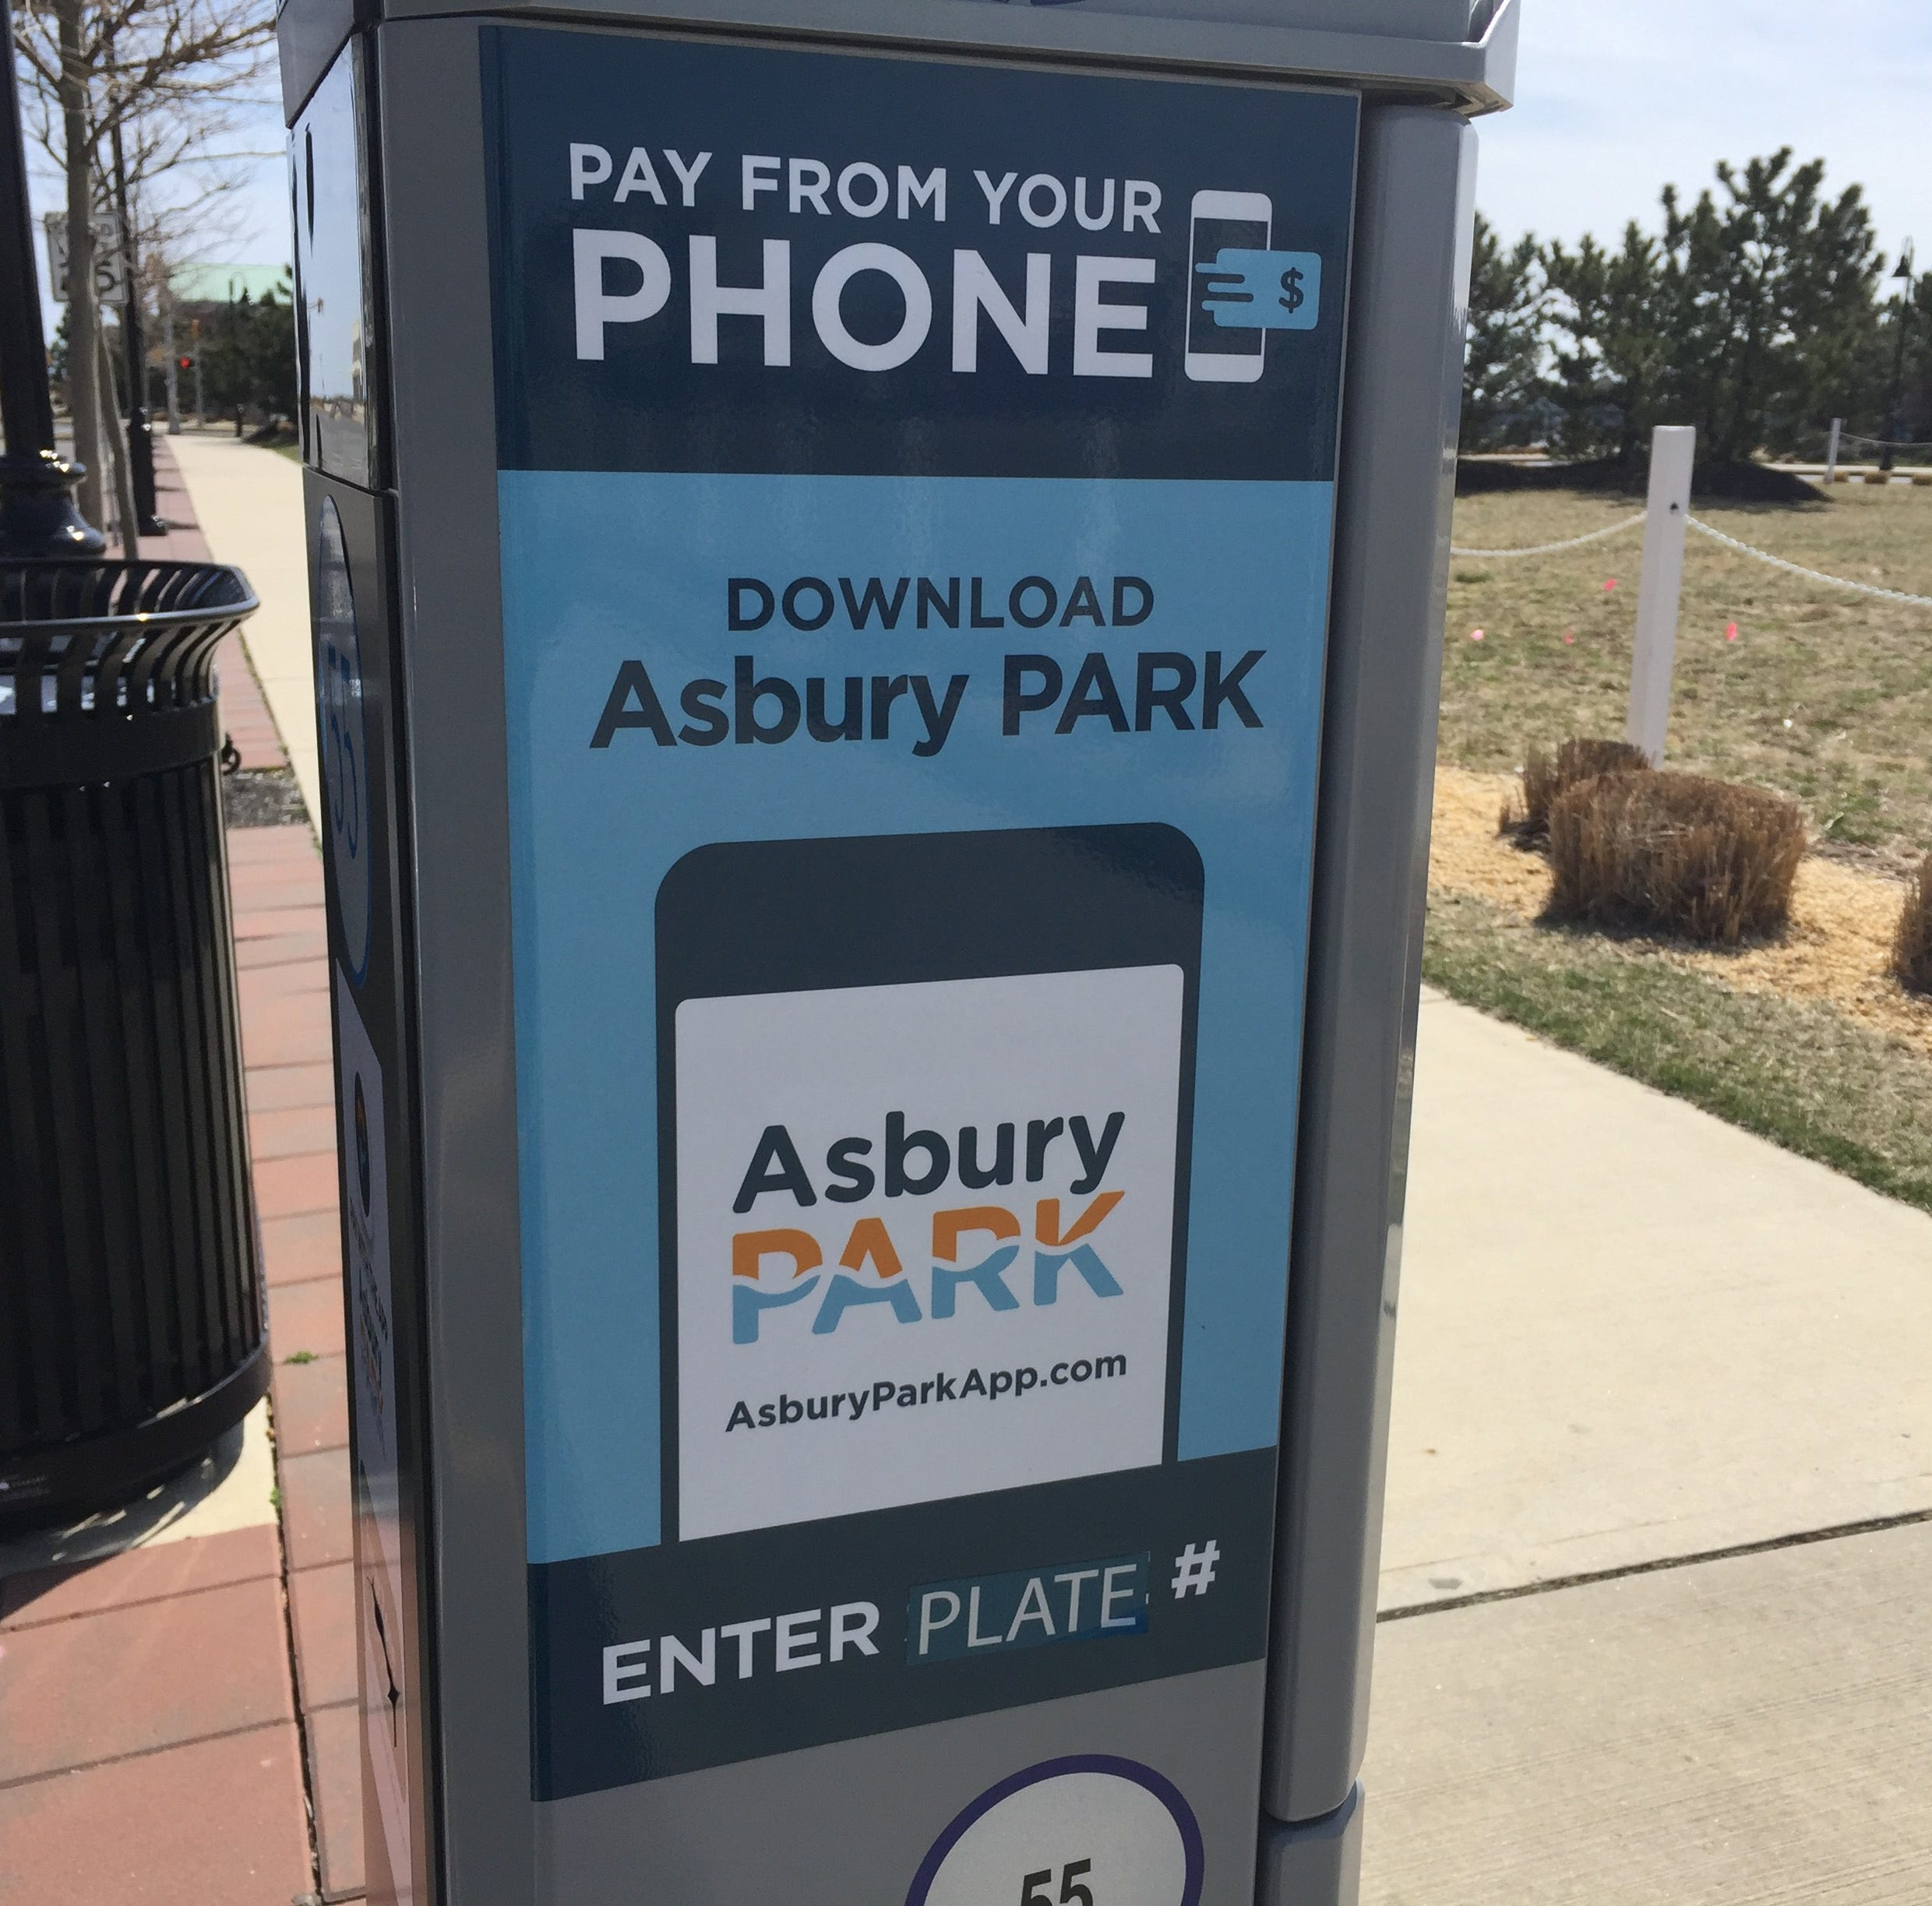 Asbury Park parking meter revenue has skyrocketed by millions